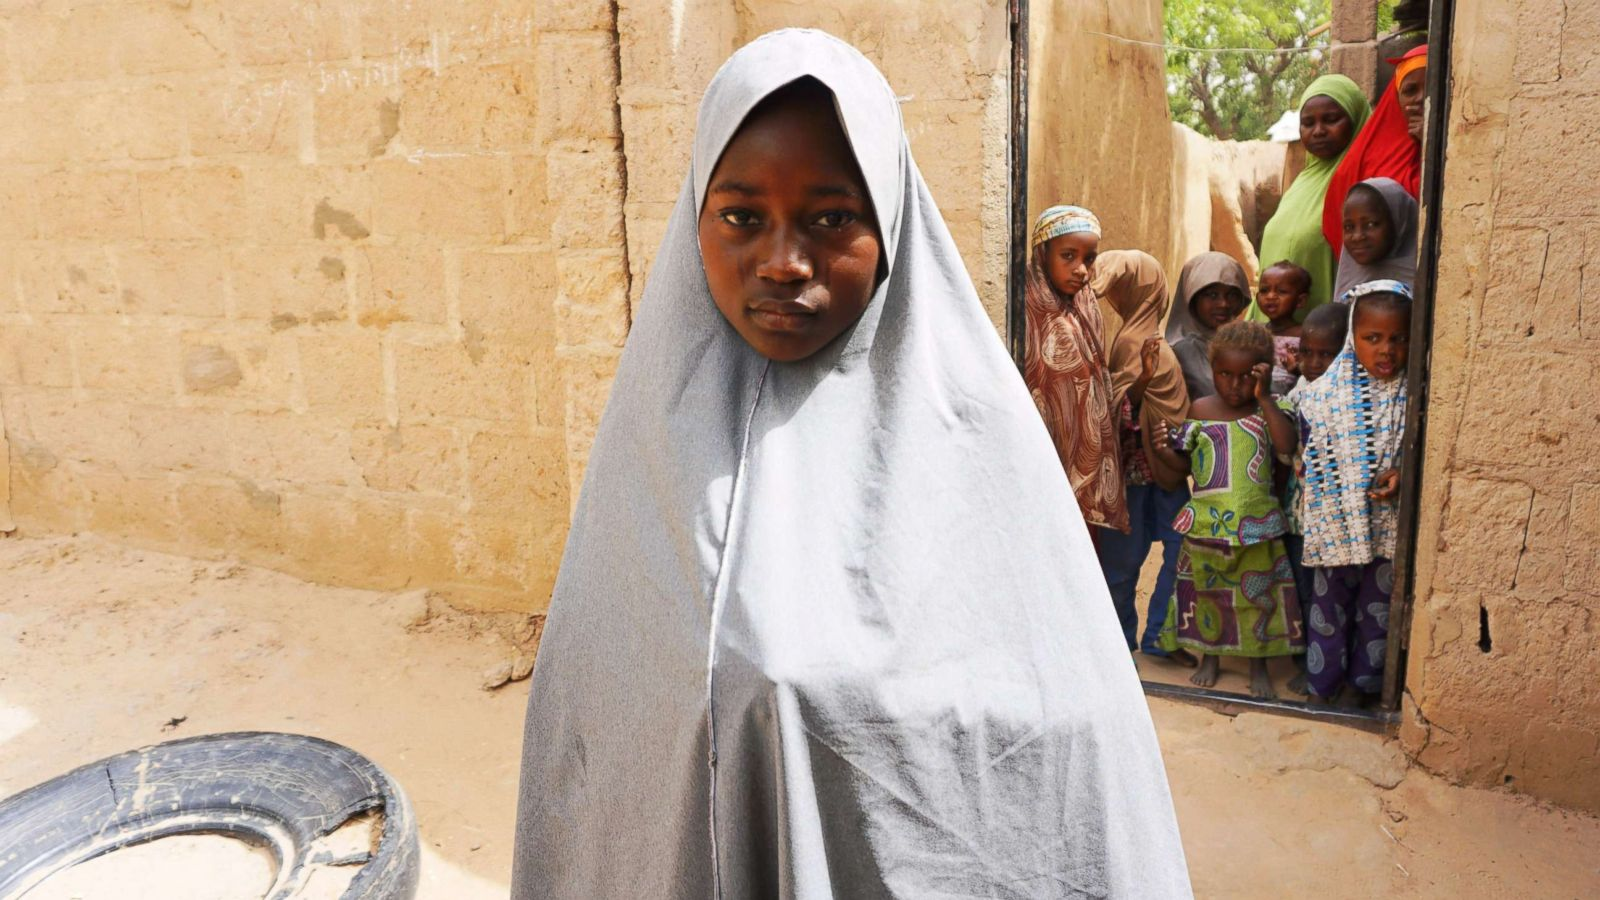 Nigerian schoolgirl who 'refused to denounce Christ' remains captive